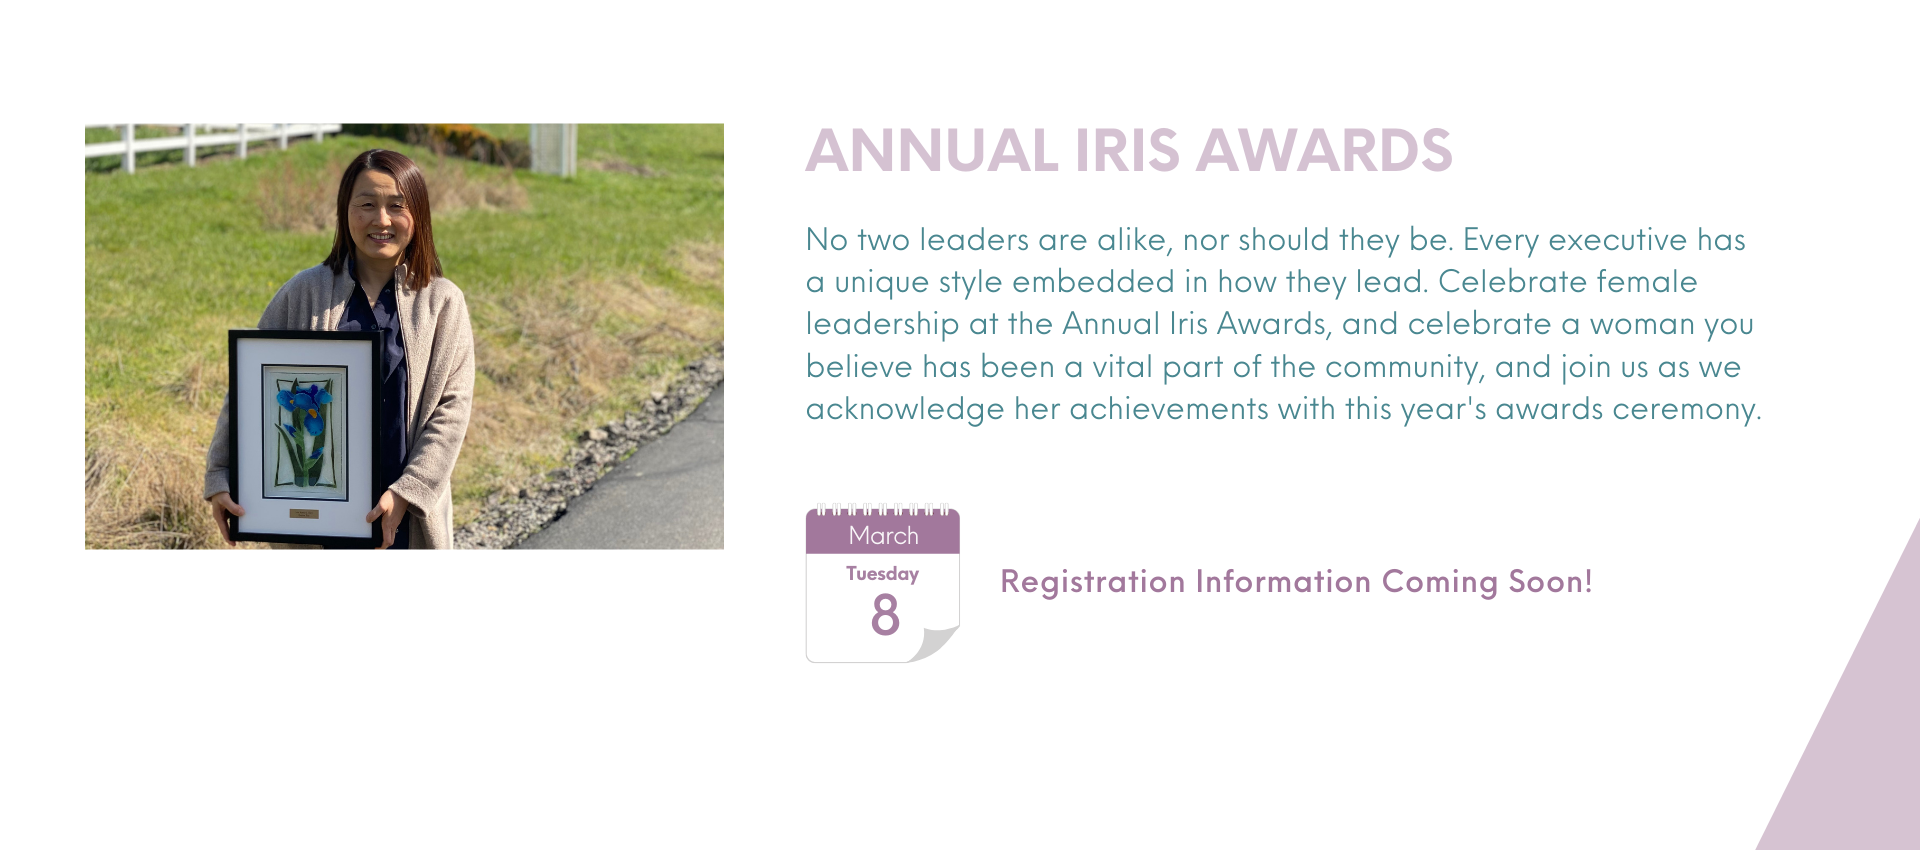 Registration Information Coming Soon! Annual Iris Awards No two leaders are alike, nor should they be. Every executive has a unique style embedded in how they lead. Celebrate female leadership at the Annual Iris Awards, and celebrate a woman you believe has been a vital part of the community, and join us as we acknowledge her achievements with this year's awards ceremony.